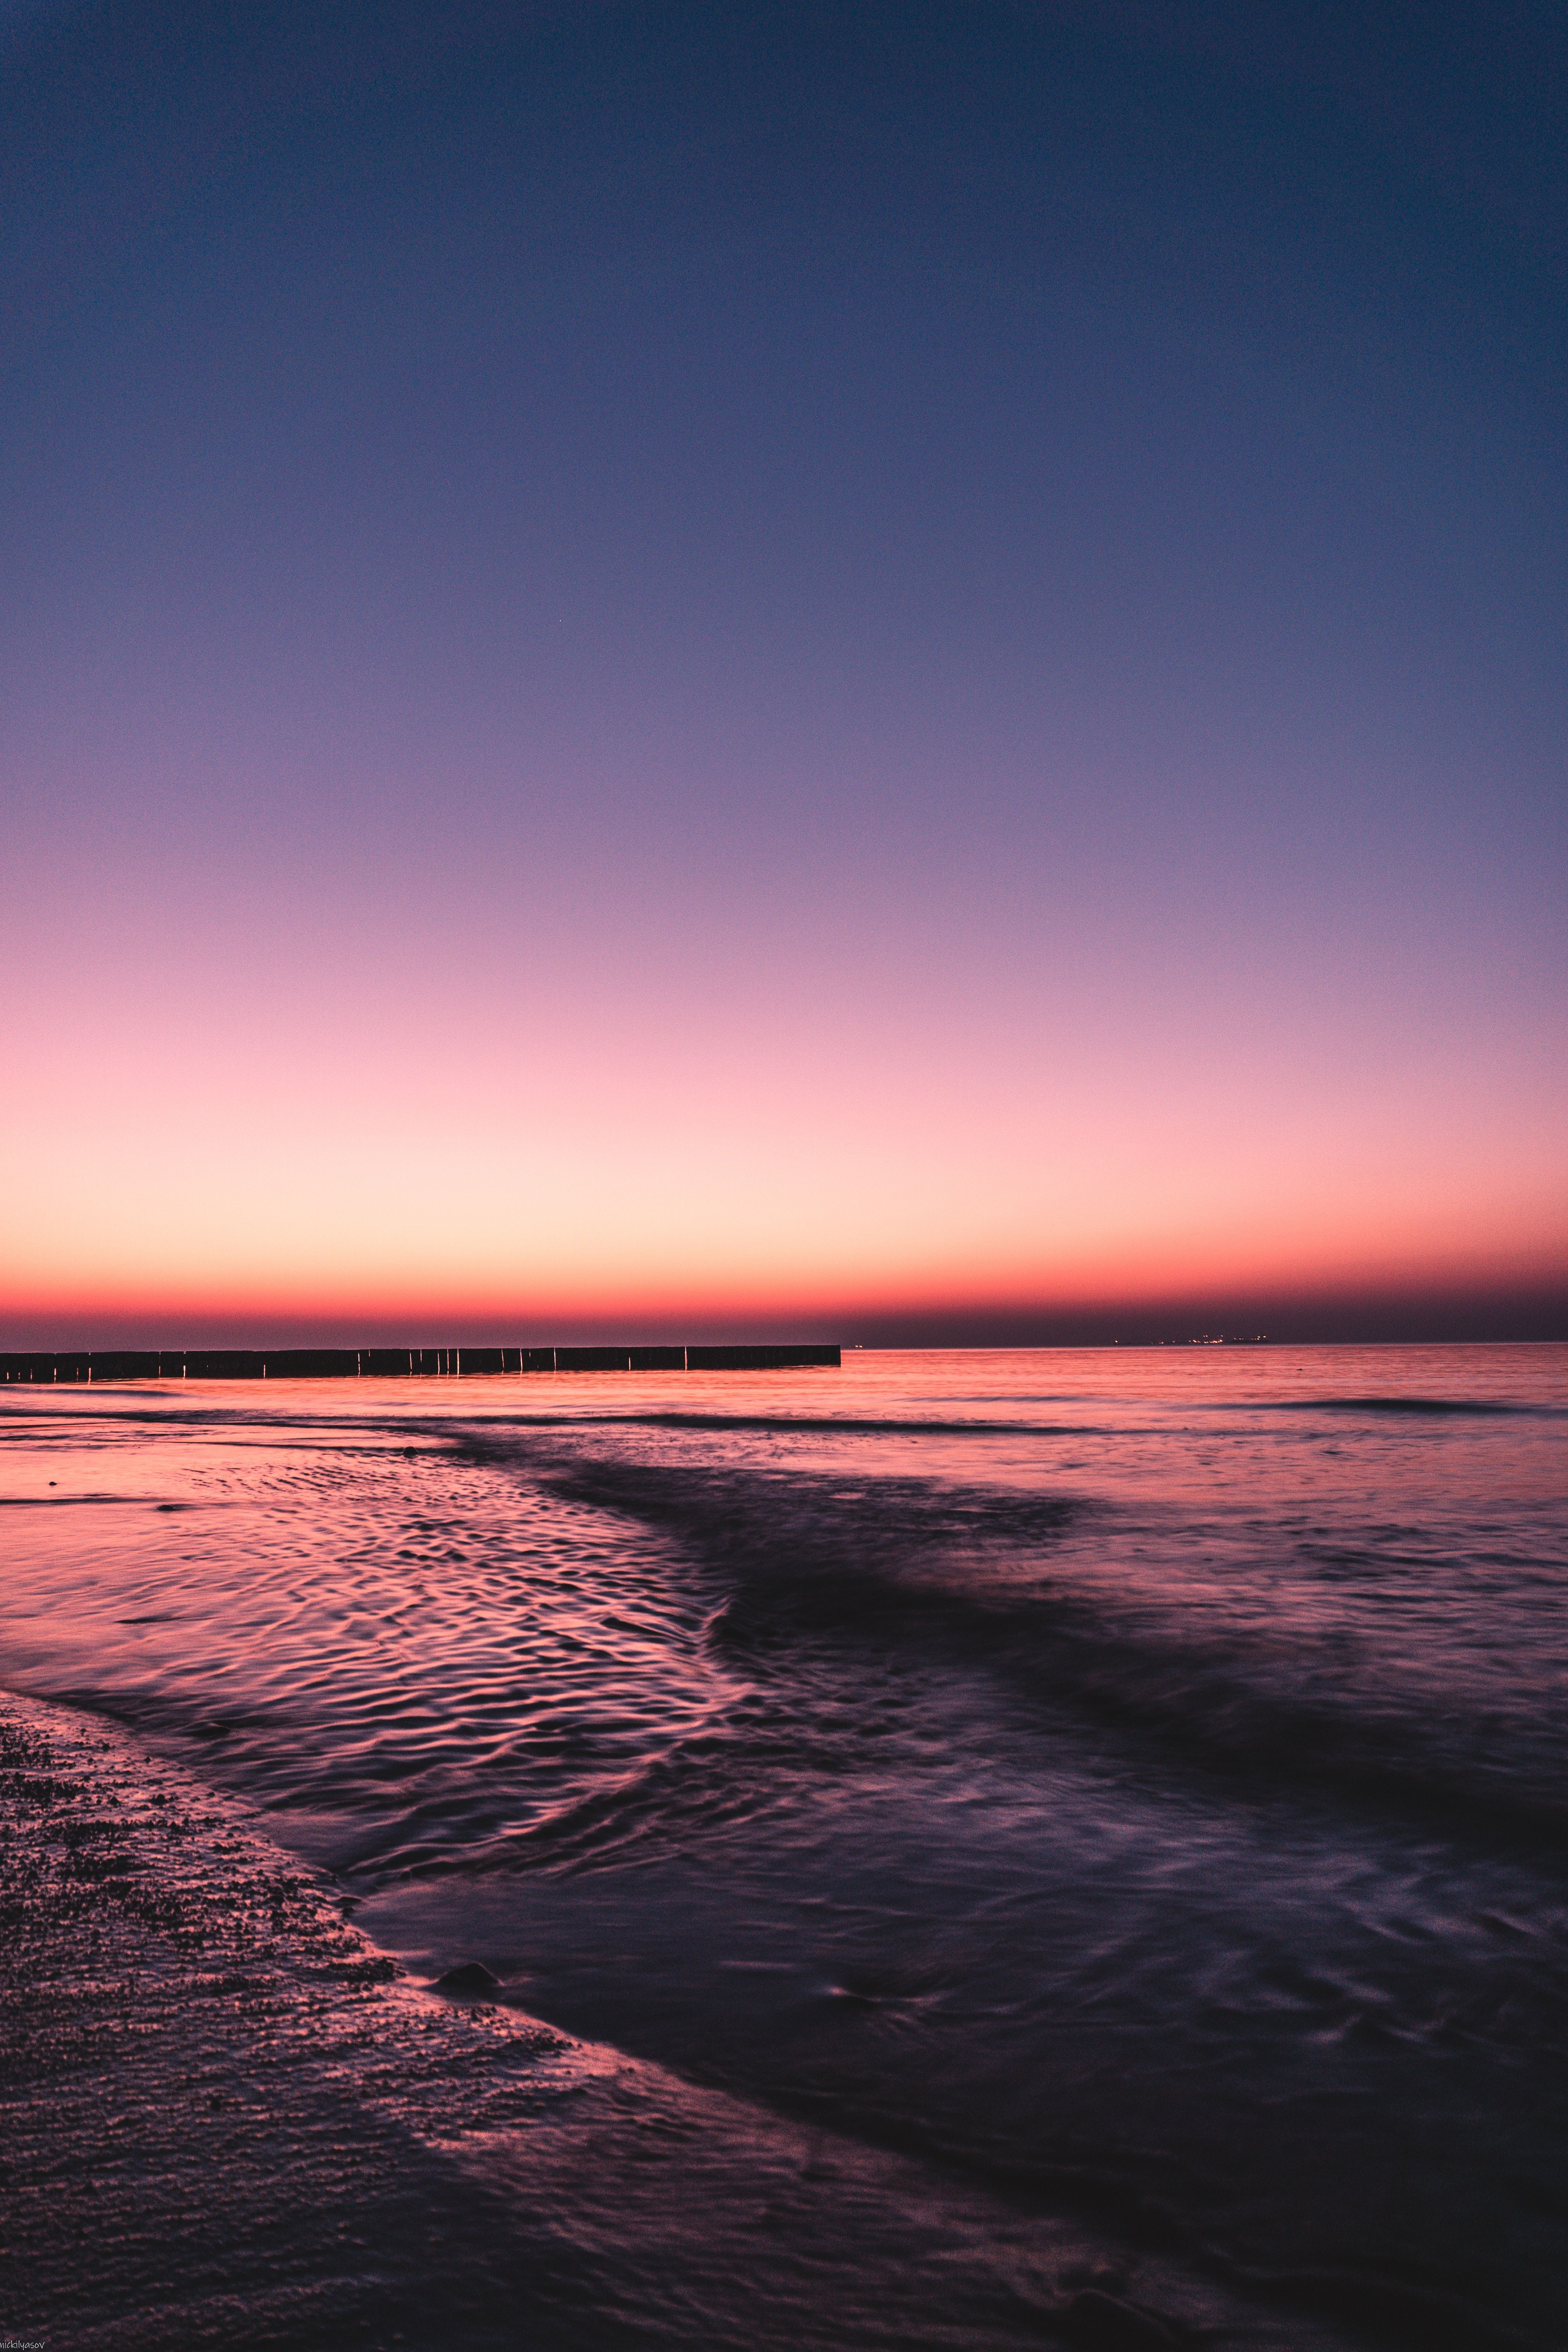 Baltic Sea Sony Ilce 5100 Feab94 Sky Aesthetic Sunset Wallpaper Cool Wallpapers For Phones